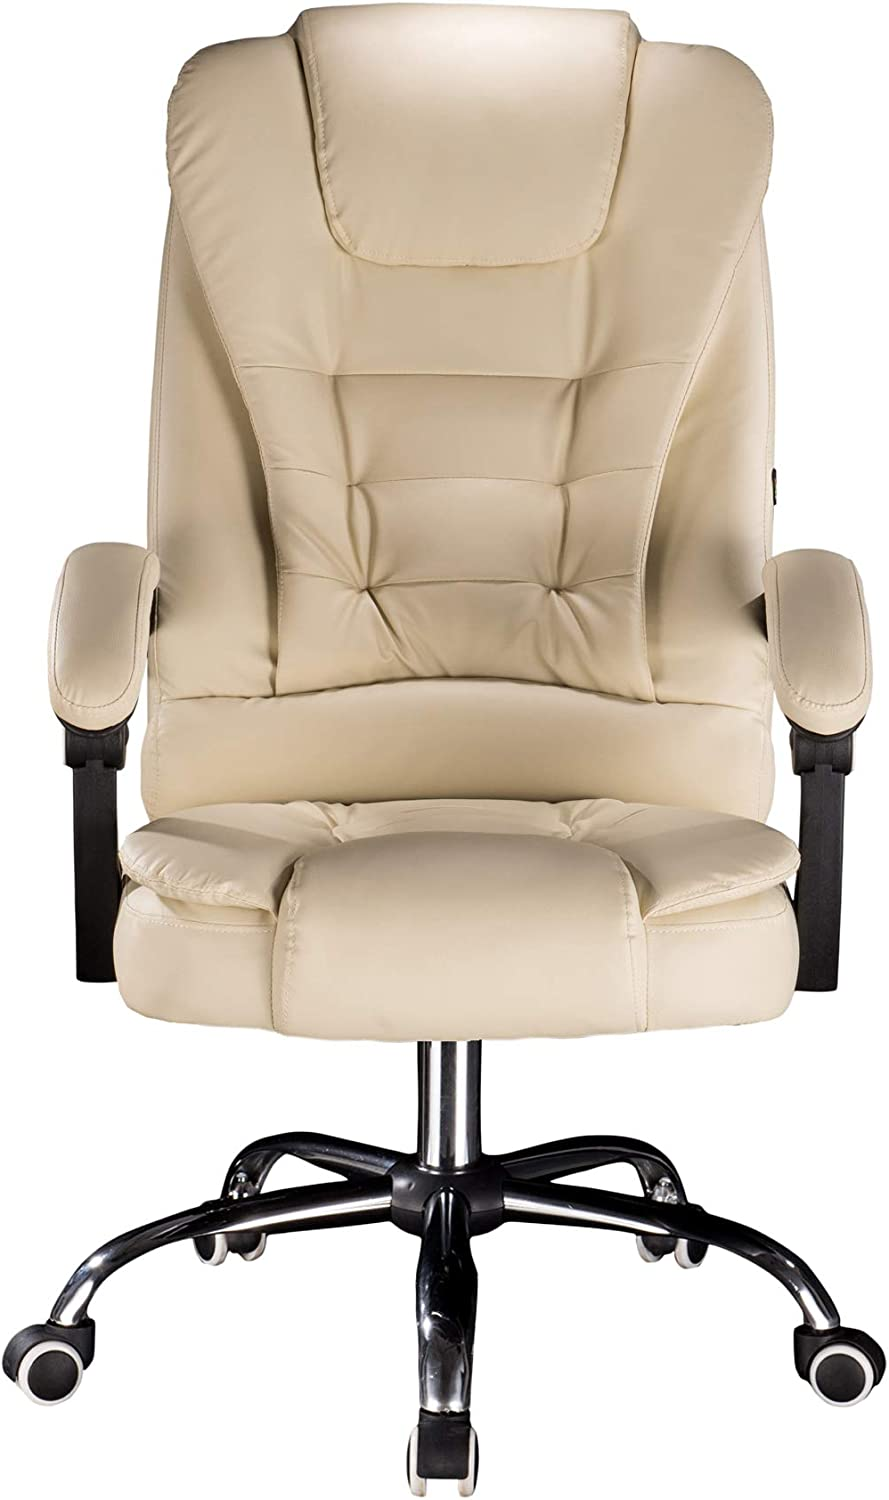 Cosyshow Comfort Genuine Leather High Back Executive Office Desk Chair Ergonomic Adjustable Recliner Computer PC Gaming Chair Footrest Armrest (Beige)